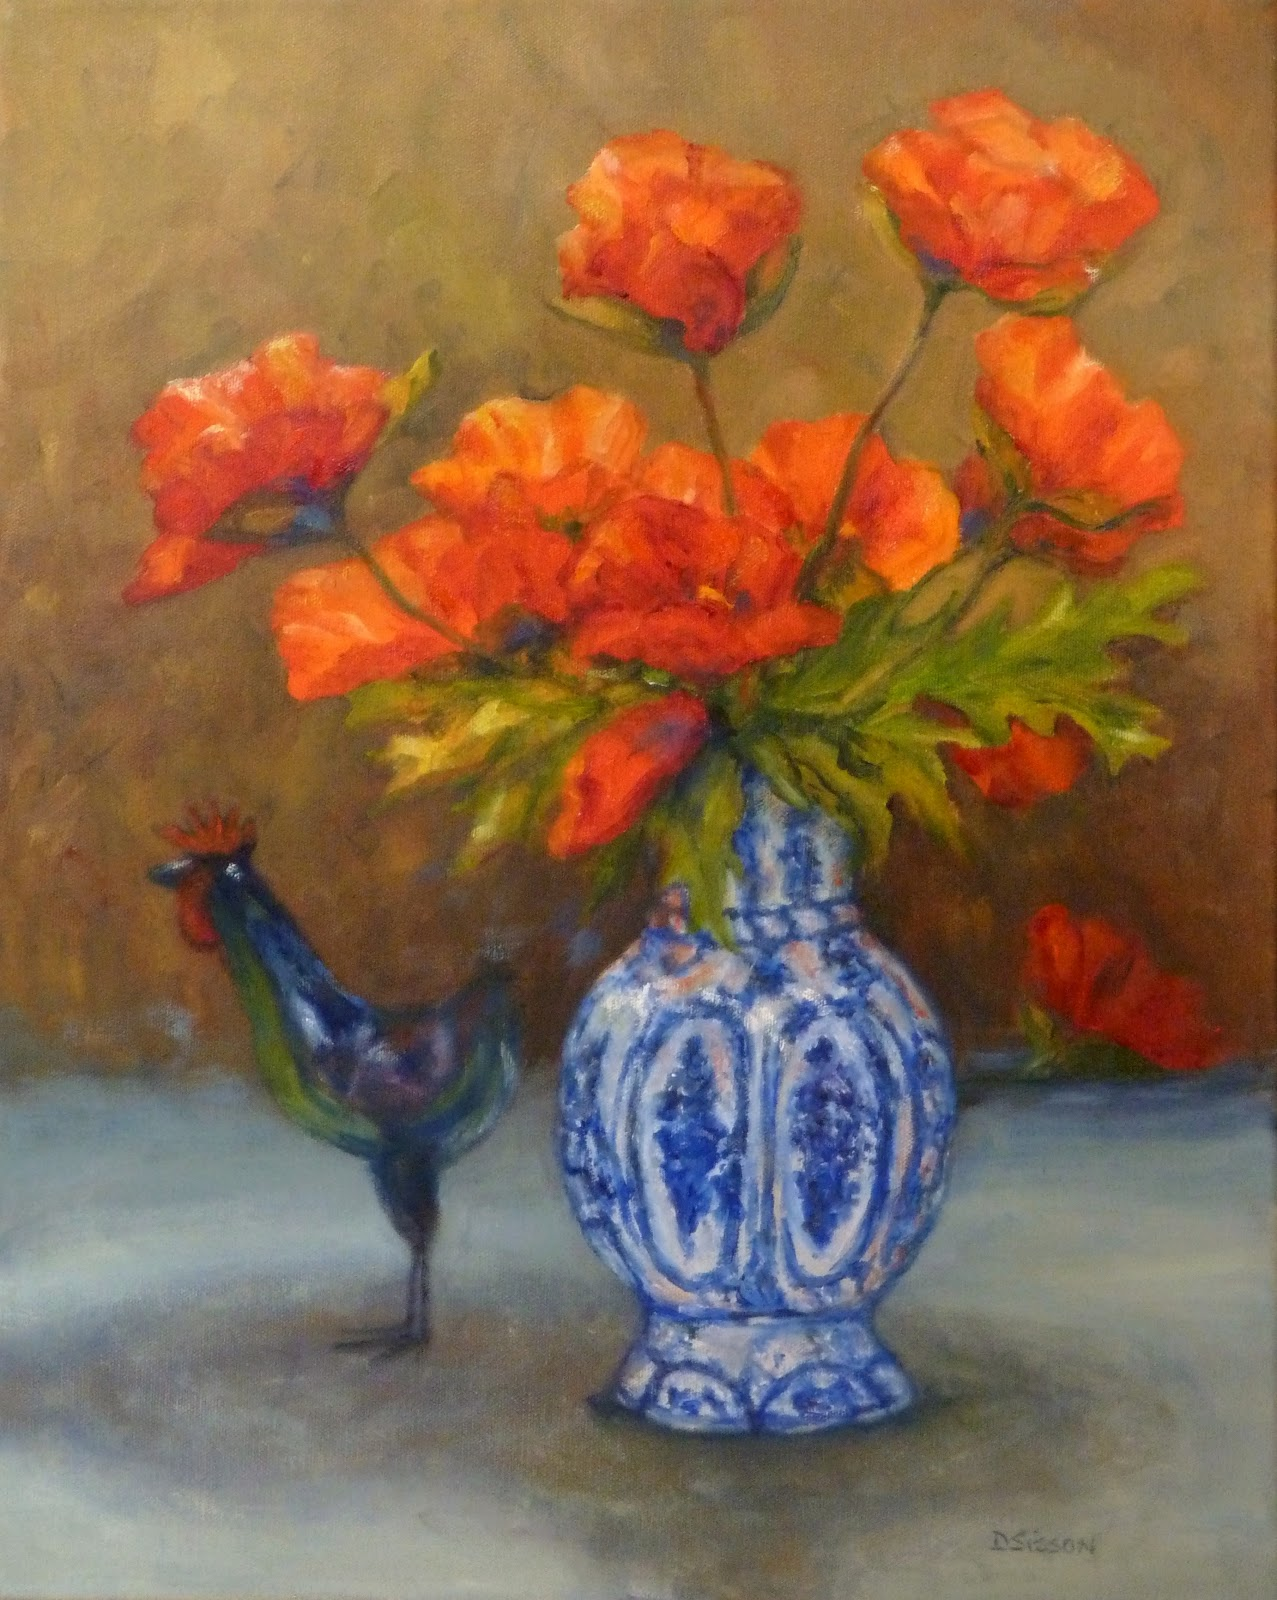 Daily painting projects poppies with blue vase oil painting flowers poppies with blue vase oil painting flowers mightylinksfo